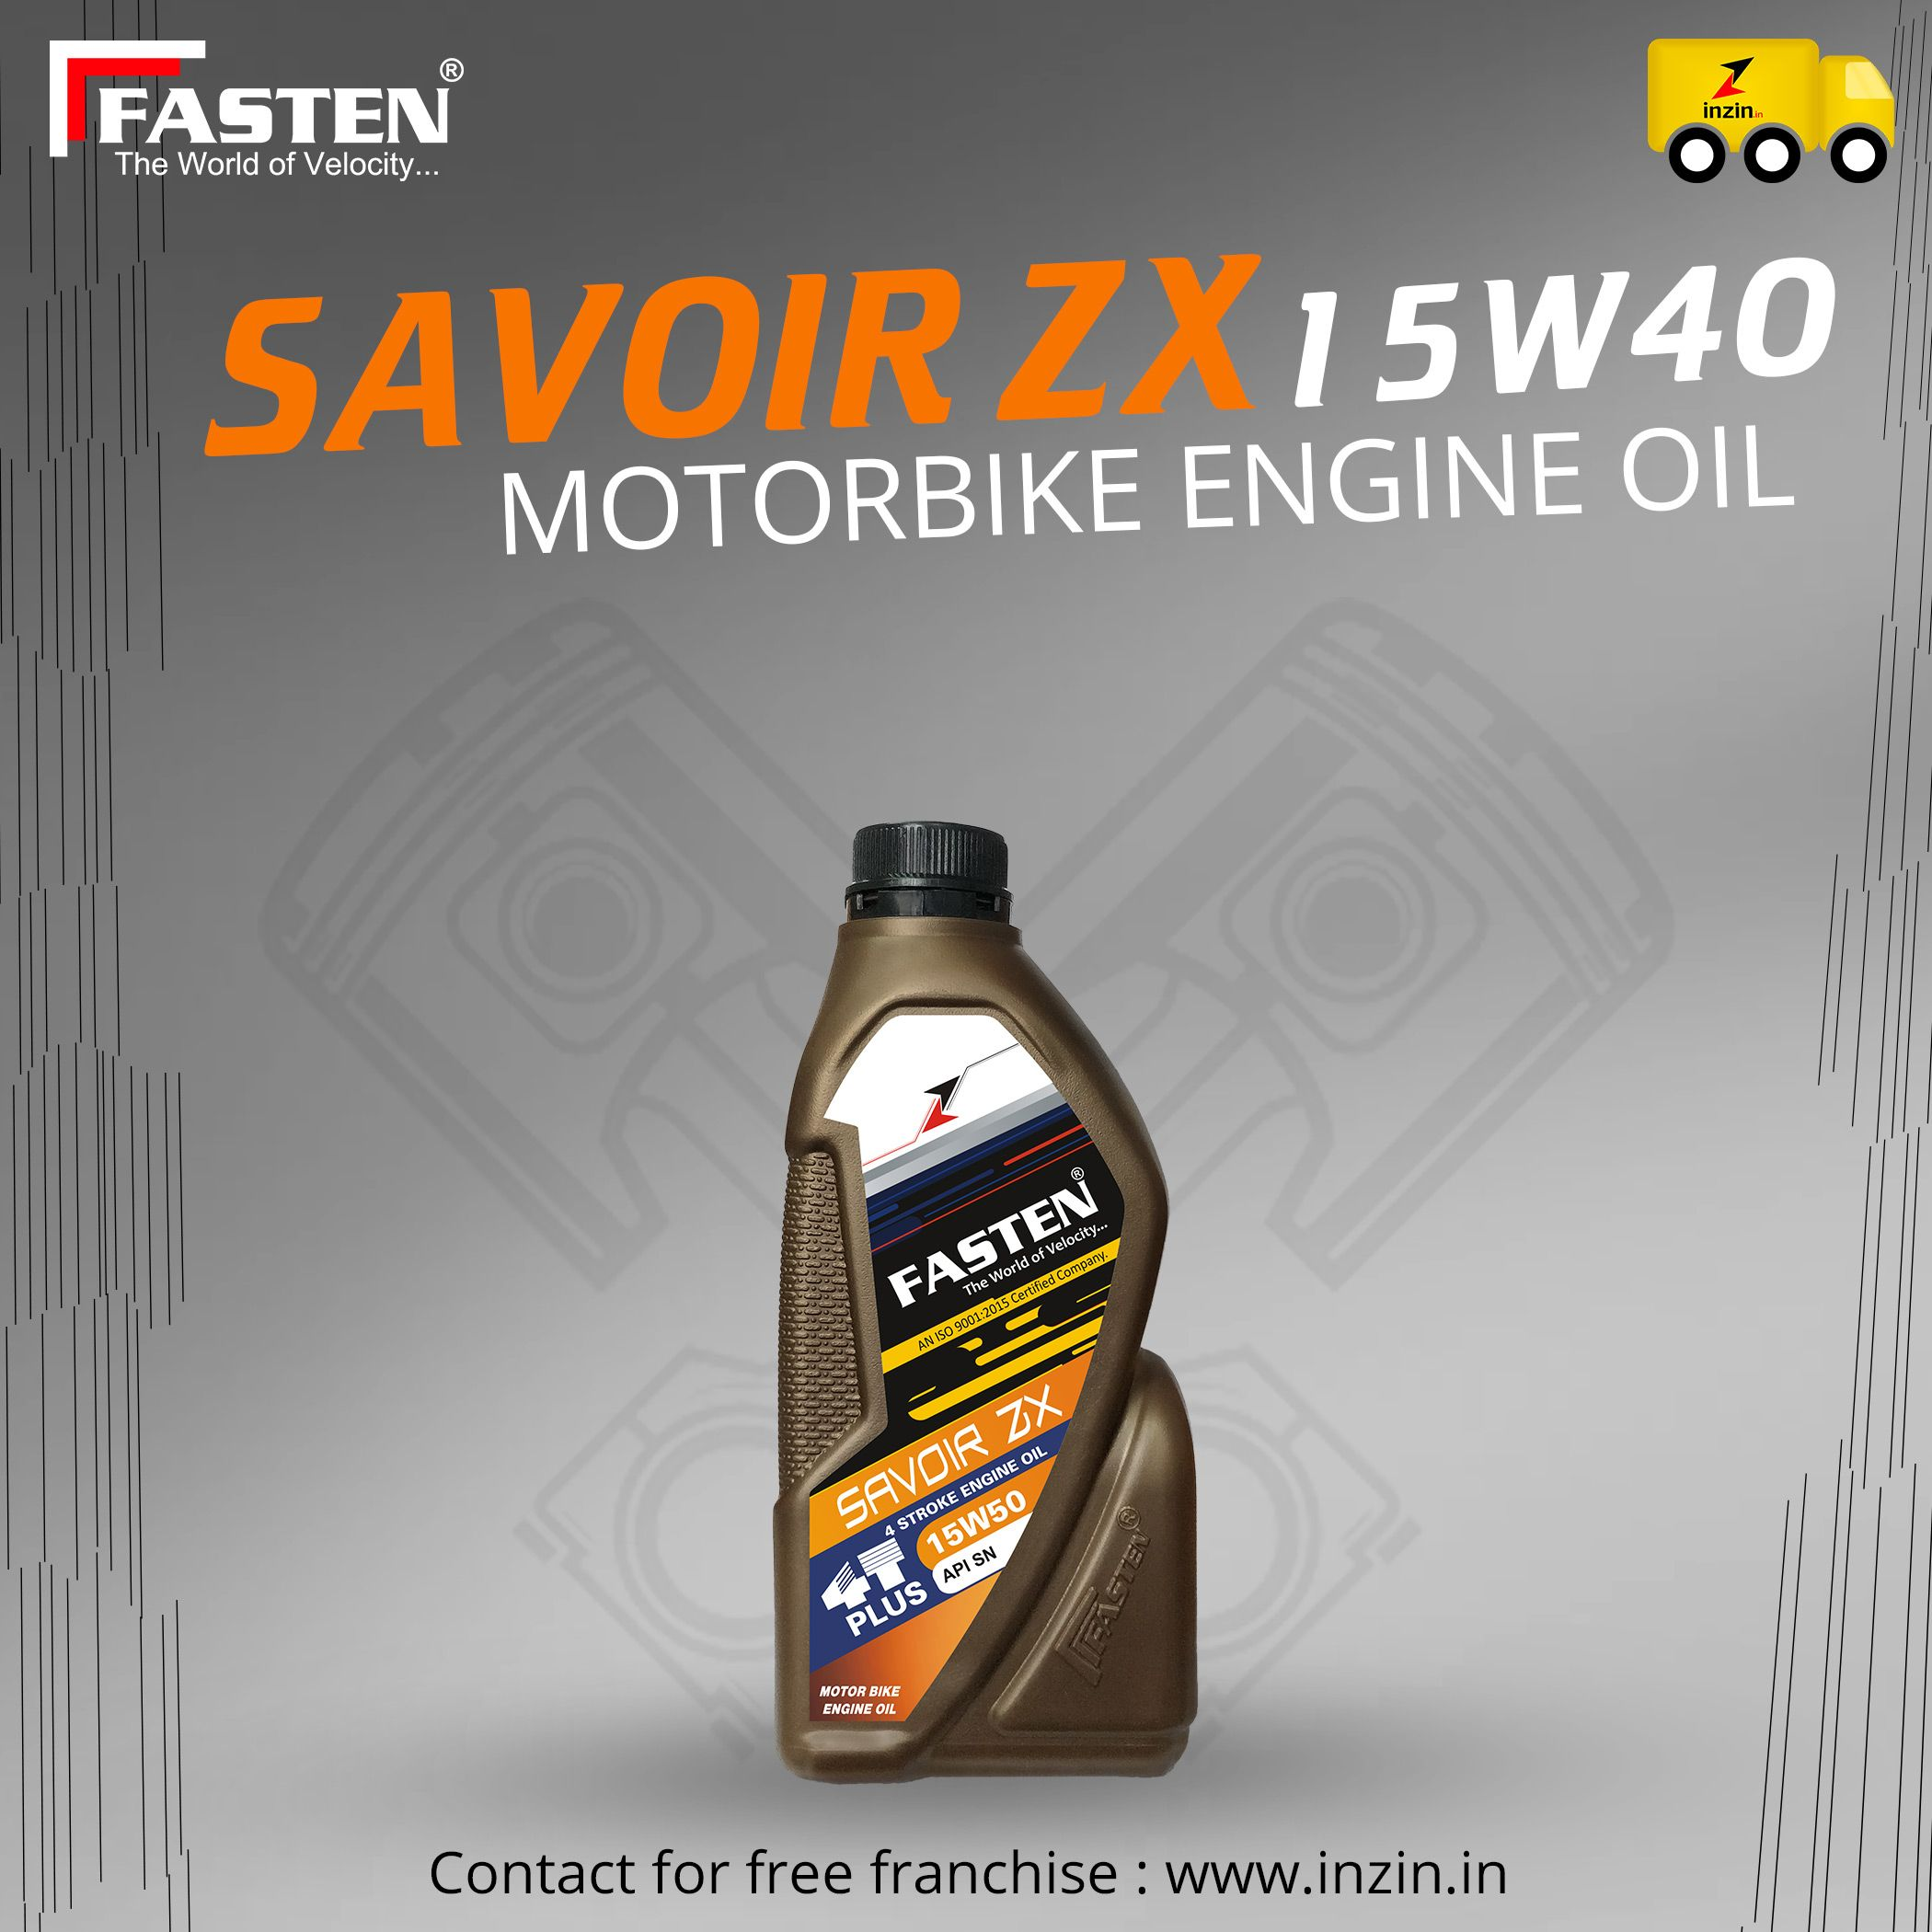 Savoir Zx 15w40 Engine Oil Oils Engineering Oil Container